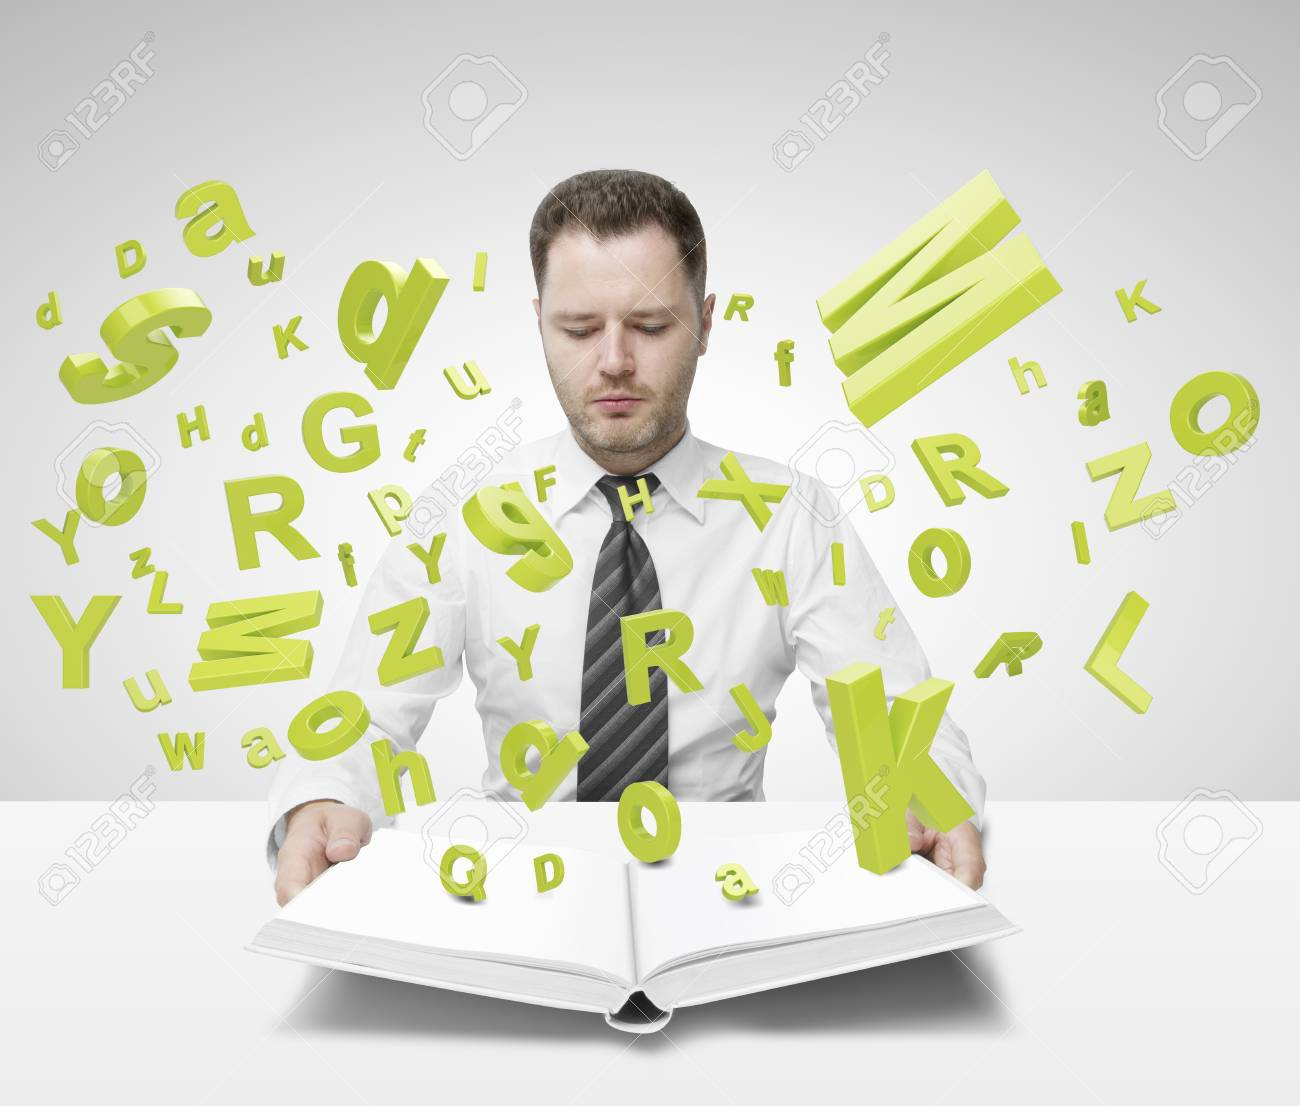 businessman holding book with many letters Stock Photo - 20339986